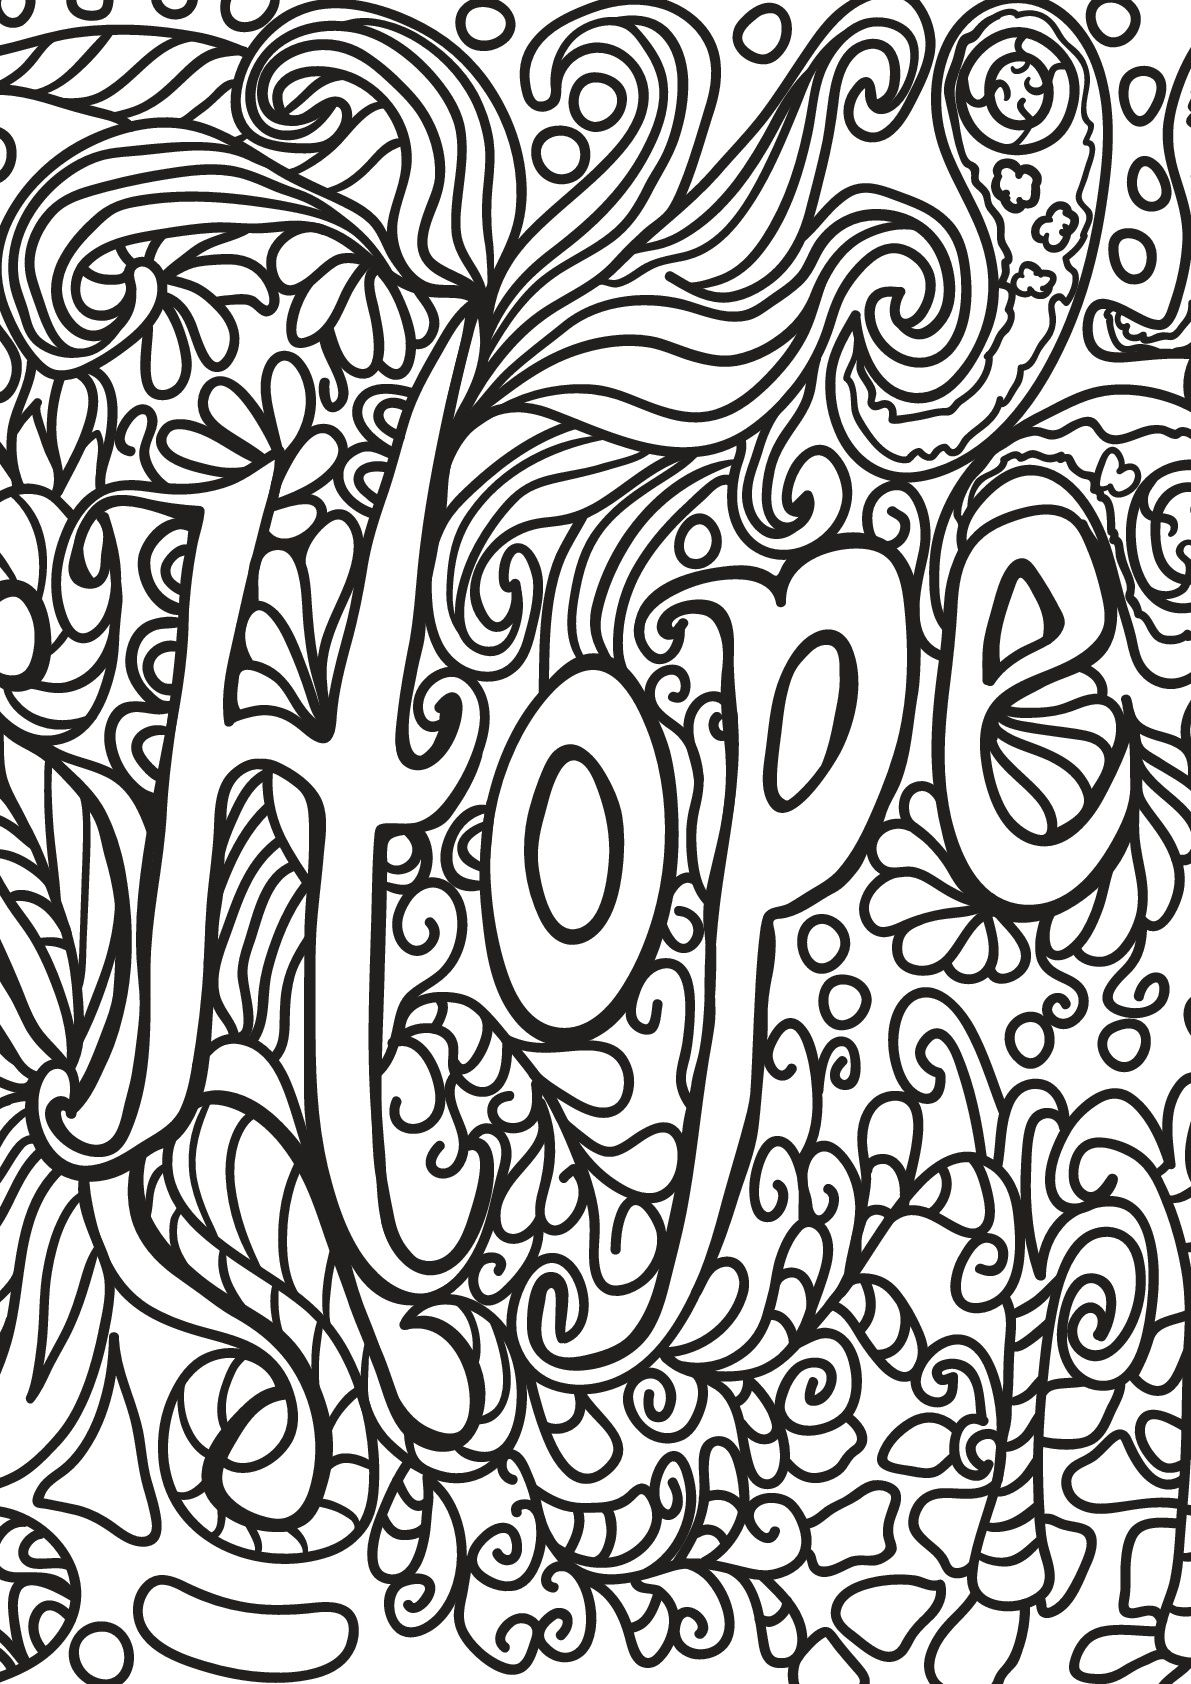 Free Book Quote 5 Hope From The Gallery Quotes Source Printable Coloring Pages For Adults By P Quote Coloring Pages Coloring Book Quotes Coloring Pages [ 1684 x 1191 Pixel ]